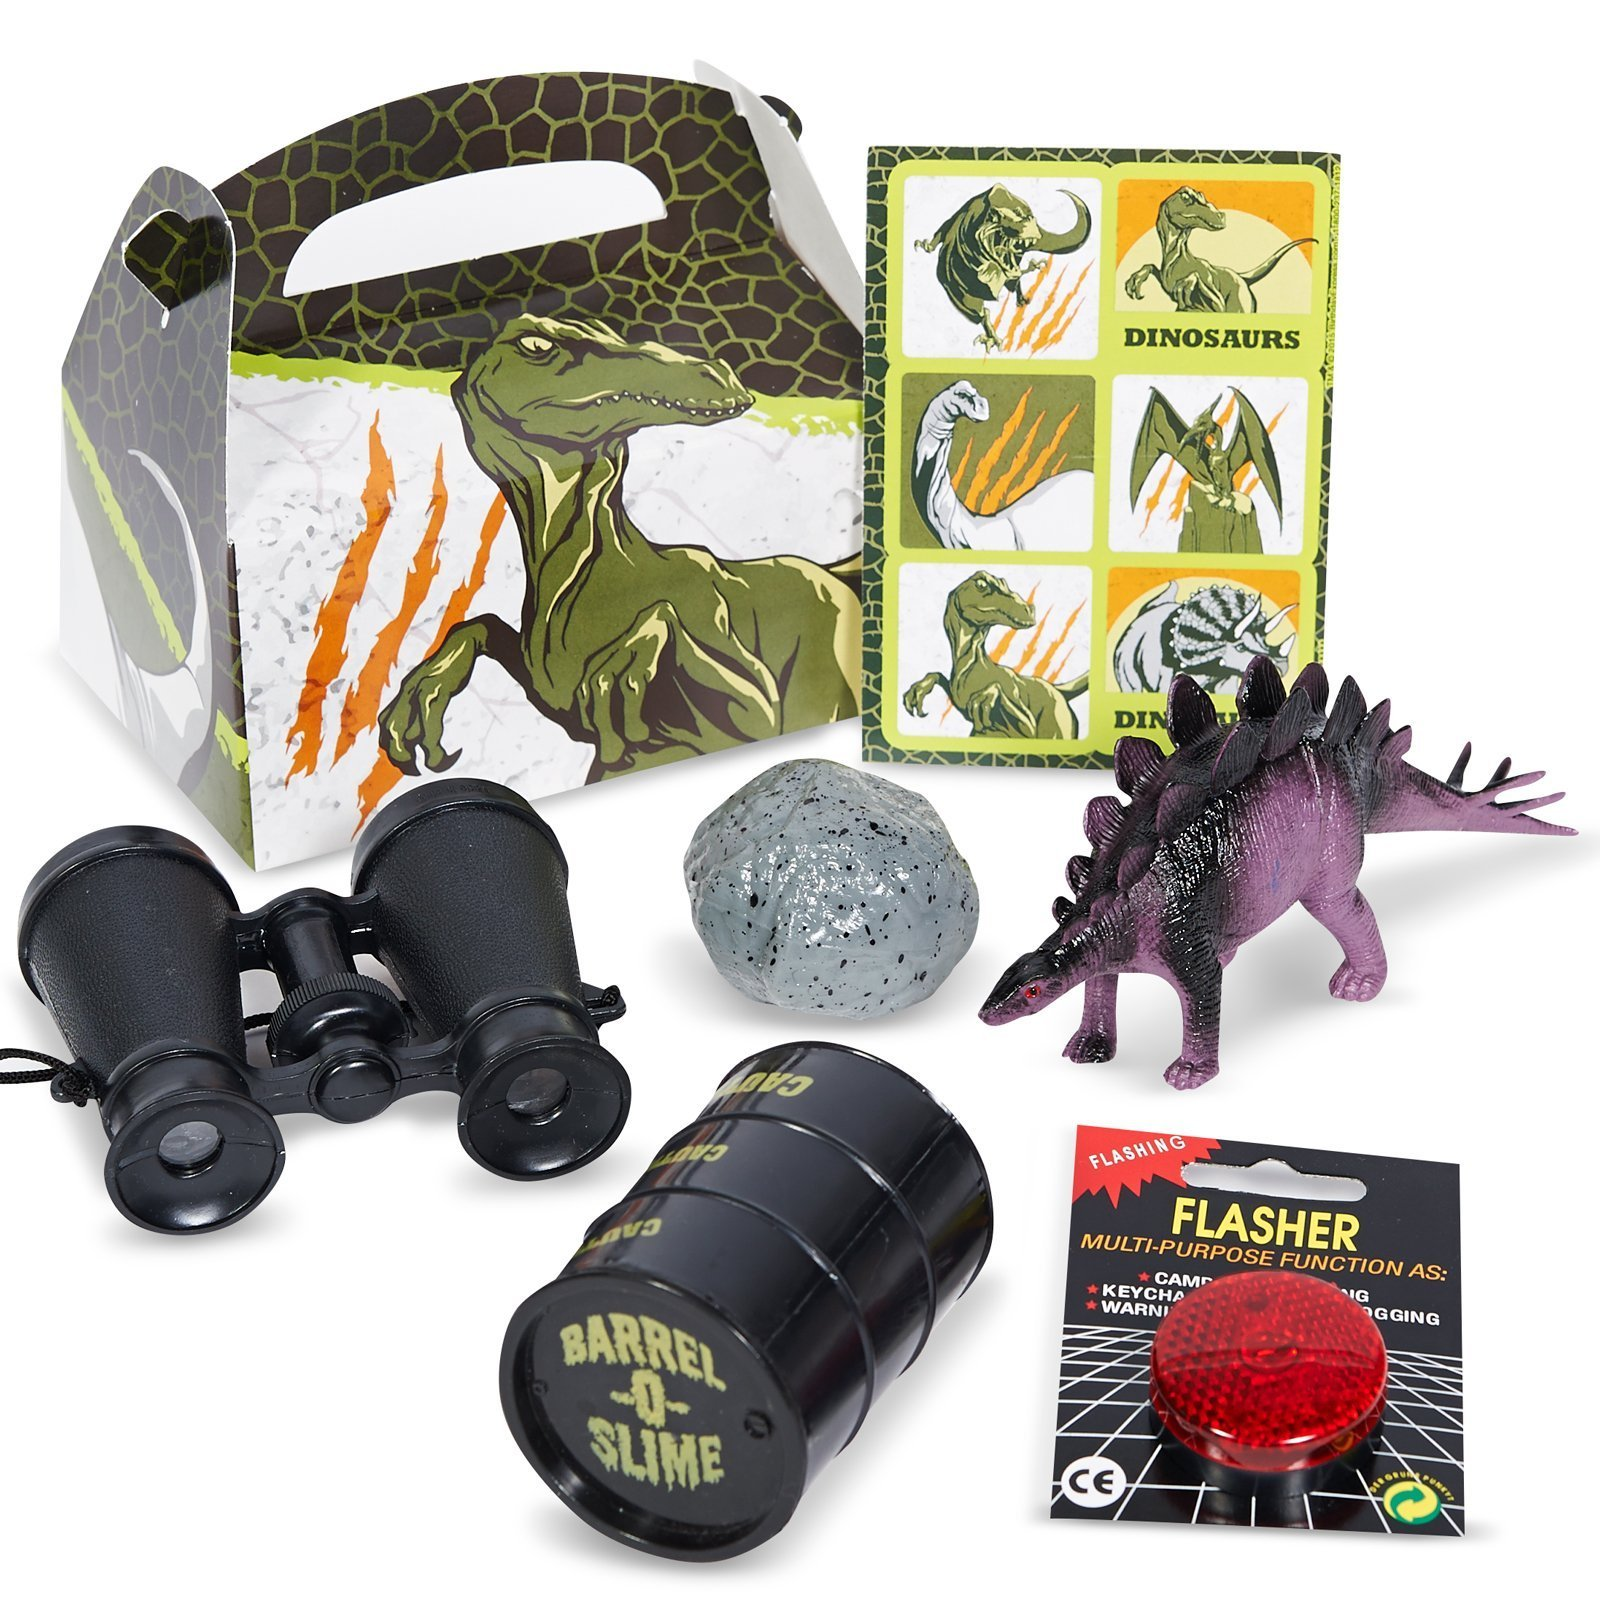 Dinosaur T-Rex Party Supplies - Filled Party Favor Box 2